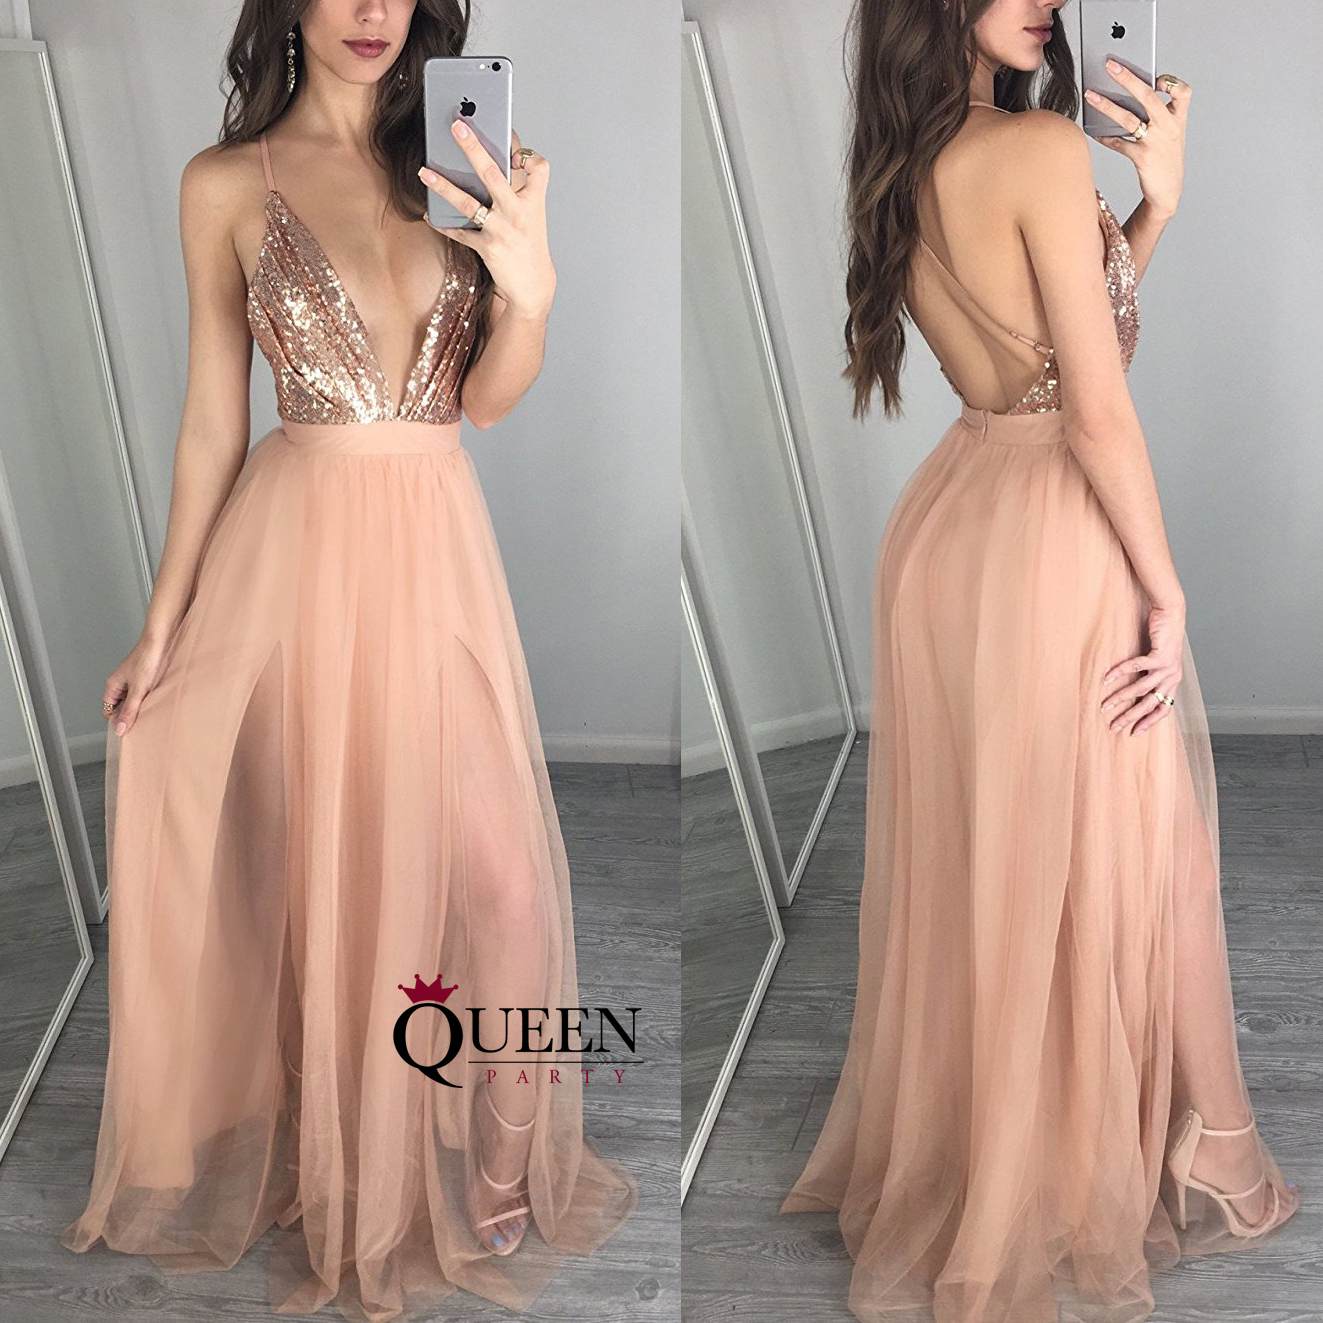 40d7a77c5f8 Sexy Champagne Tulle Spaghetti Strap Deep V-neck Sequins Bodice Formal Gown  With Open Back